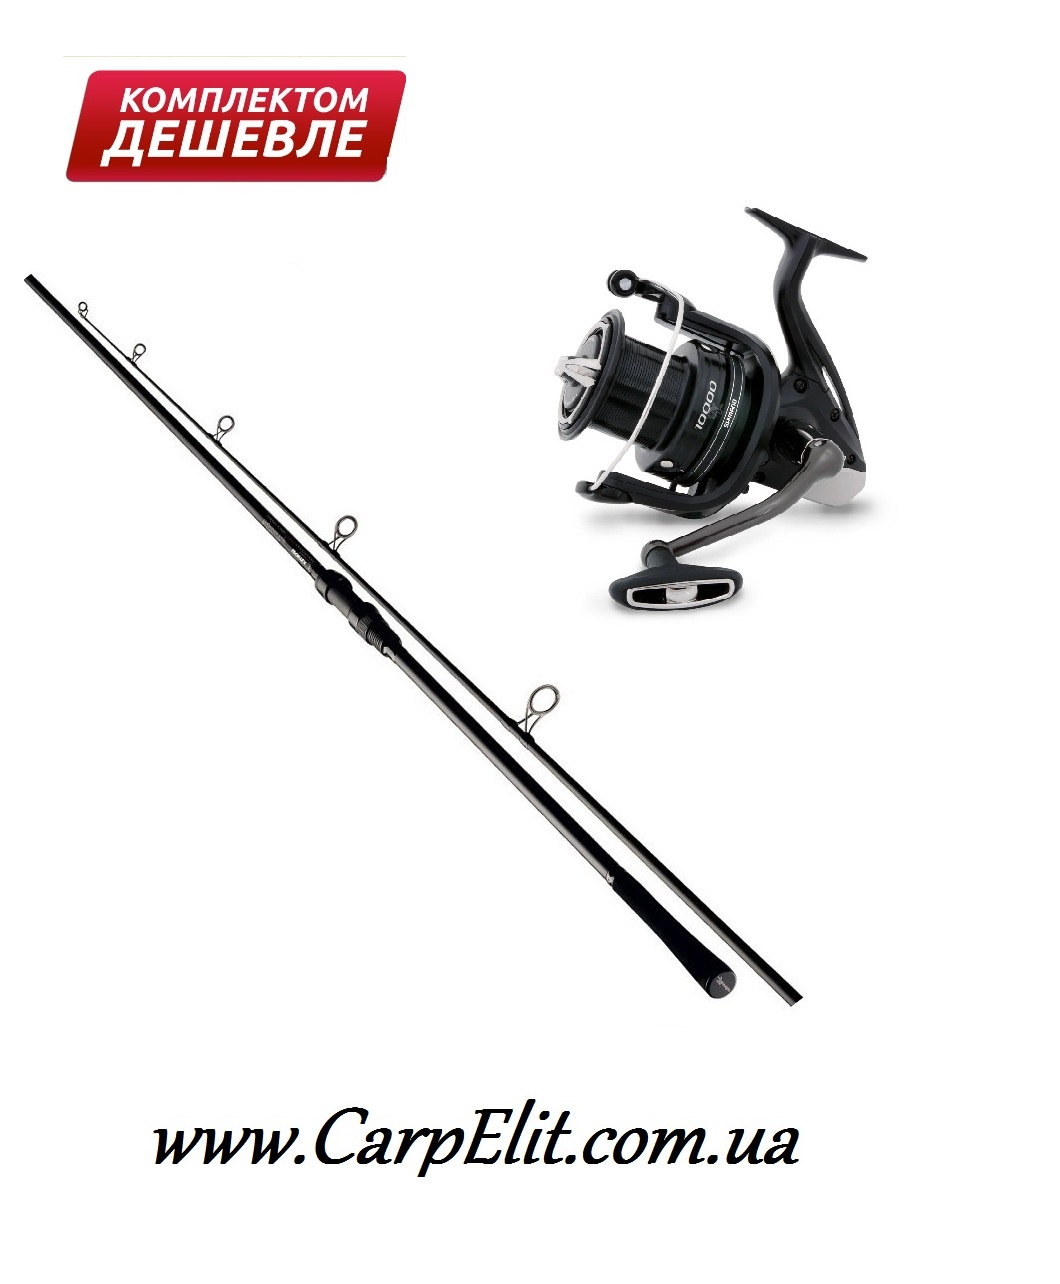 Sportex Competition CS-4 Spod 13ft 5.50lbs + SHIMANO AERLEX 10000 XTB SPOD REEL